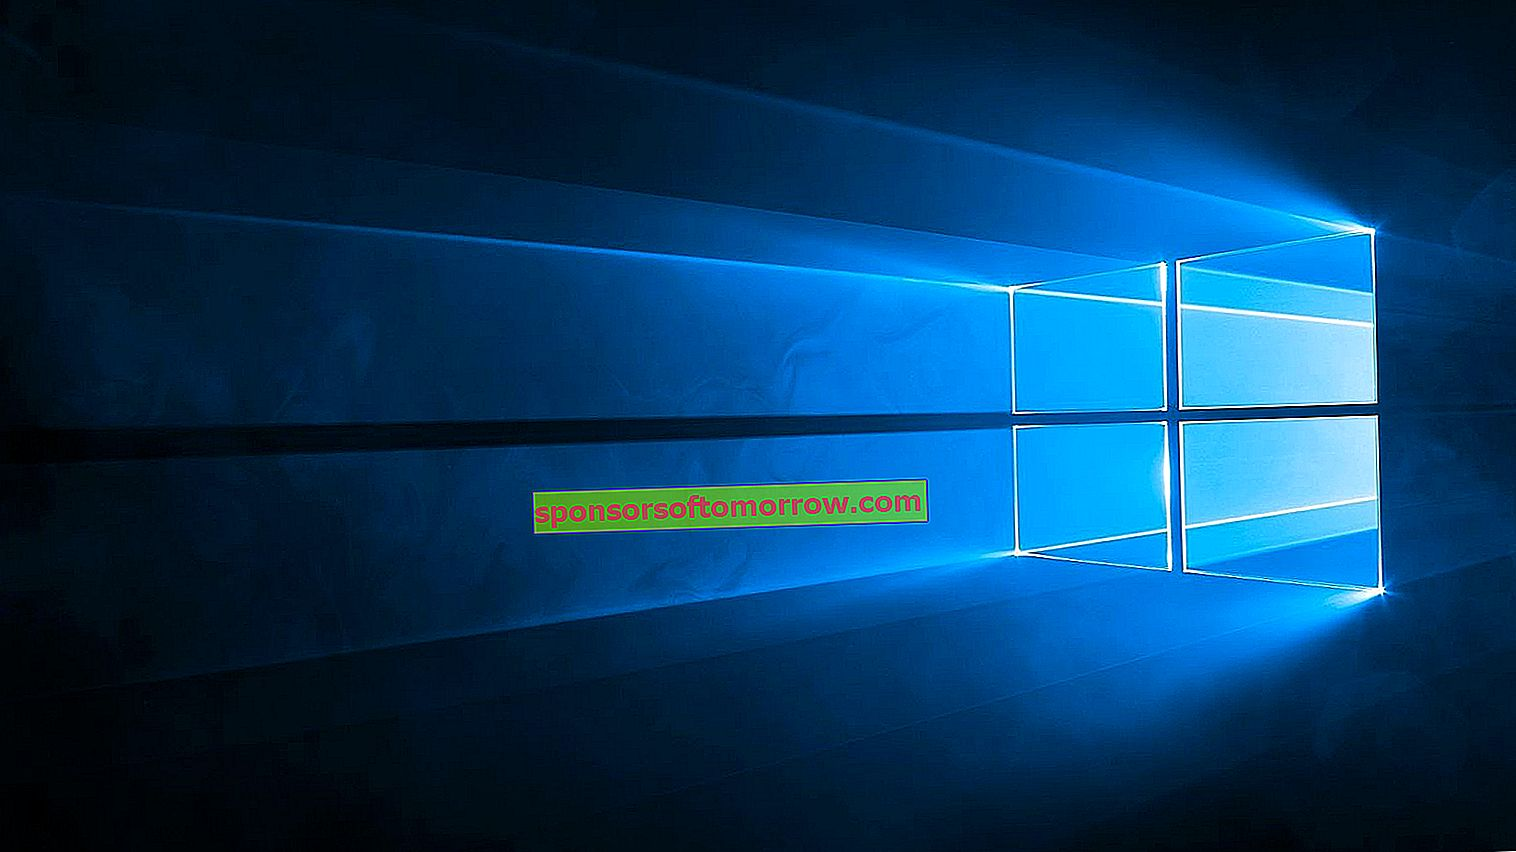 How to enter Windows 10 safe mode if it won't boot